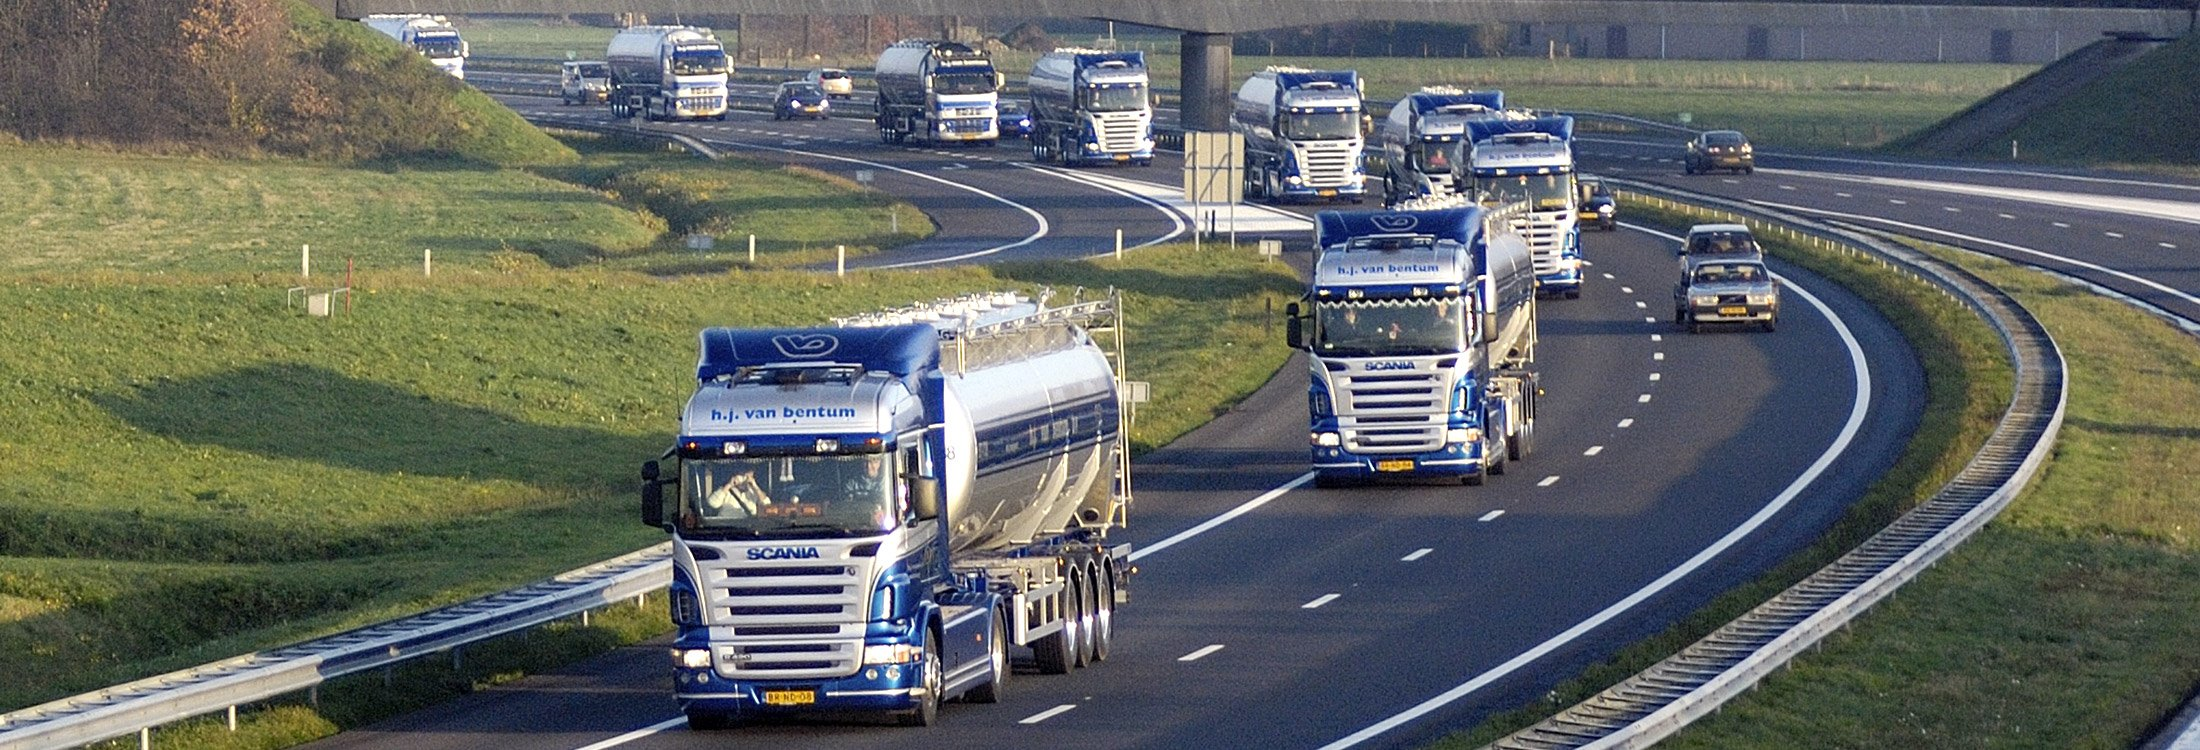 bentum transport vloot bulktransport